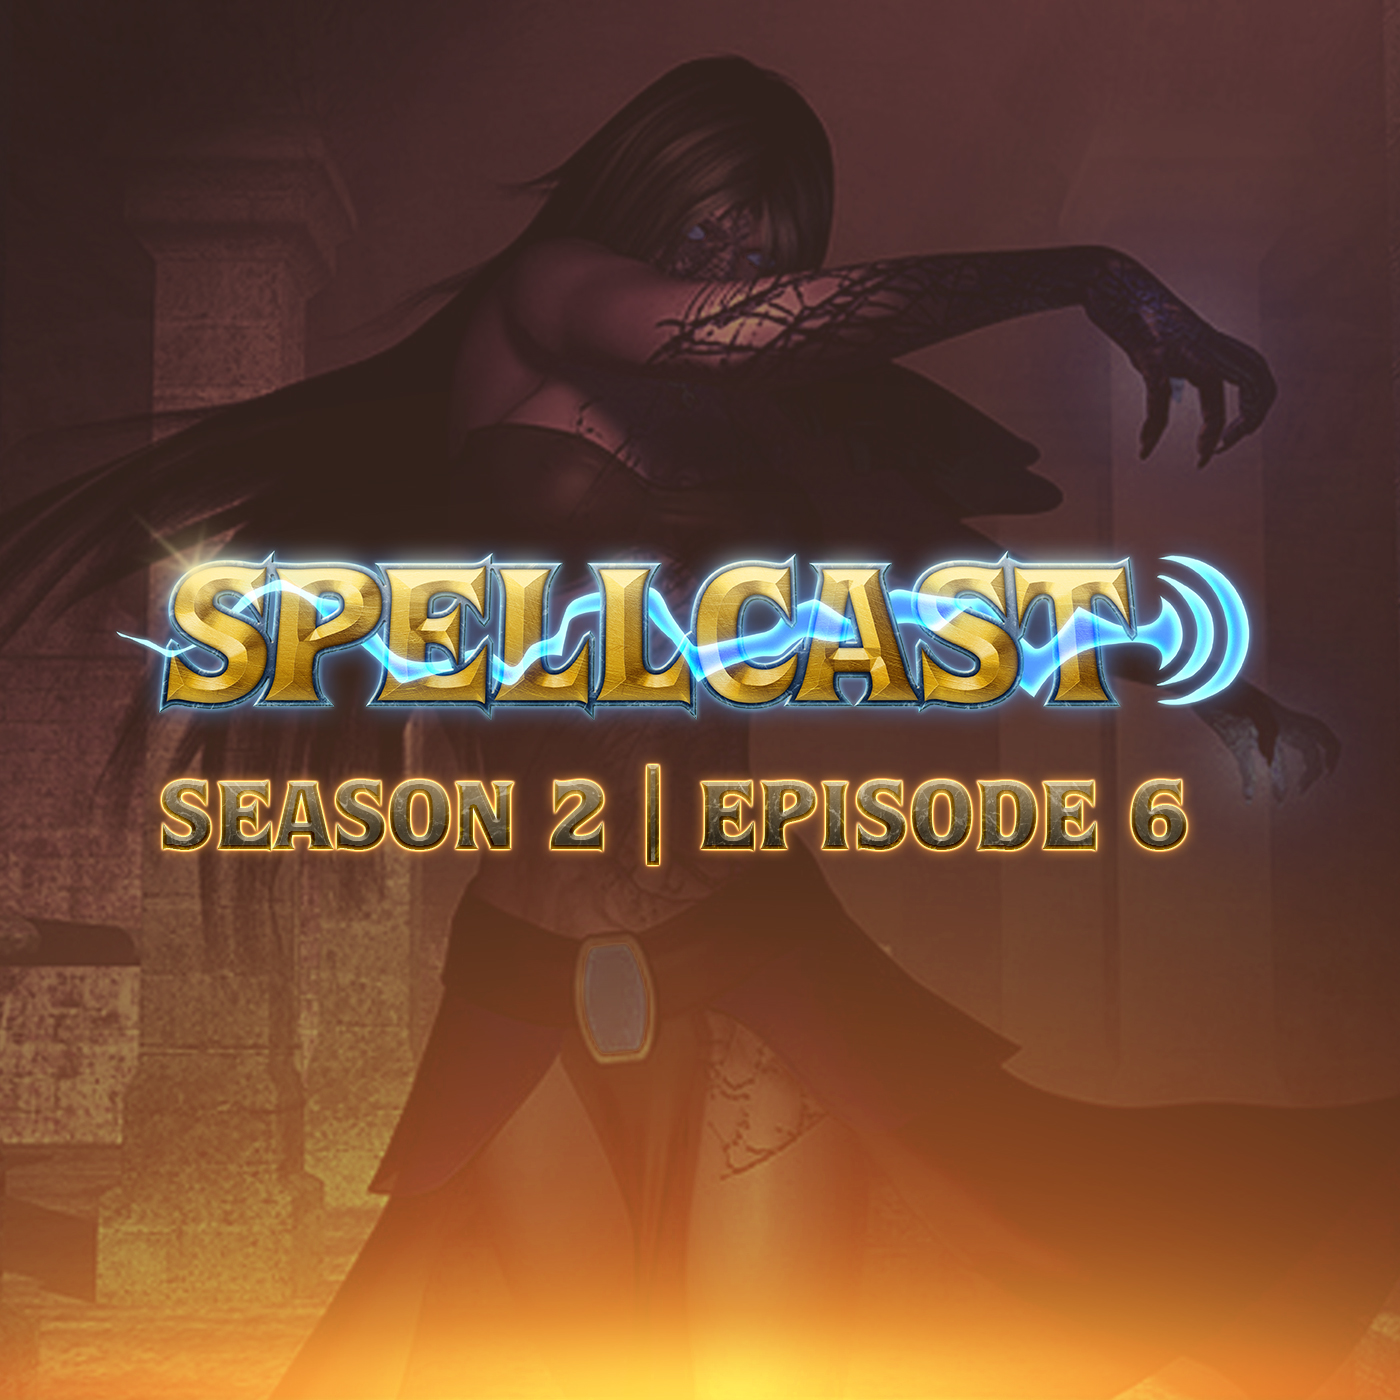 Spellcast Season 2 Episode 6